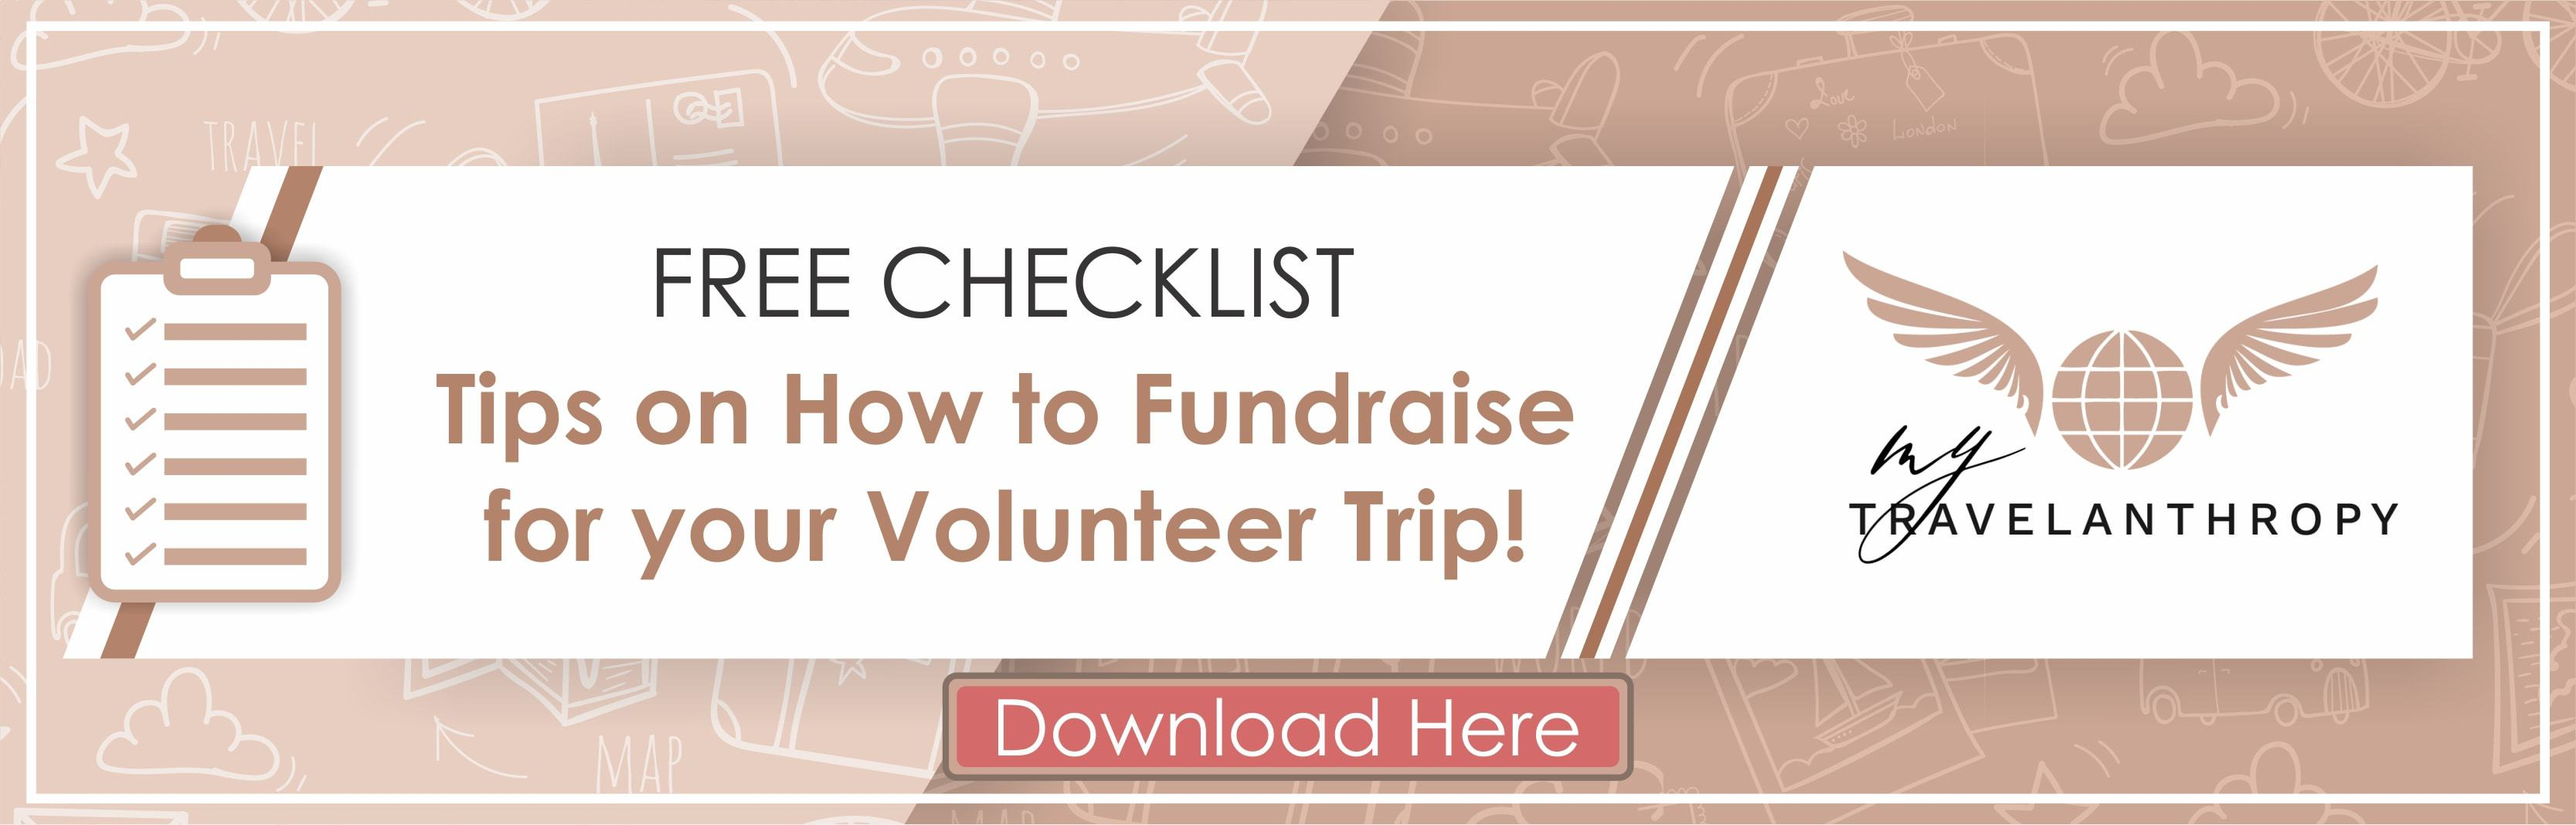 free checklist how fundraise volunteer trip abroad banner